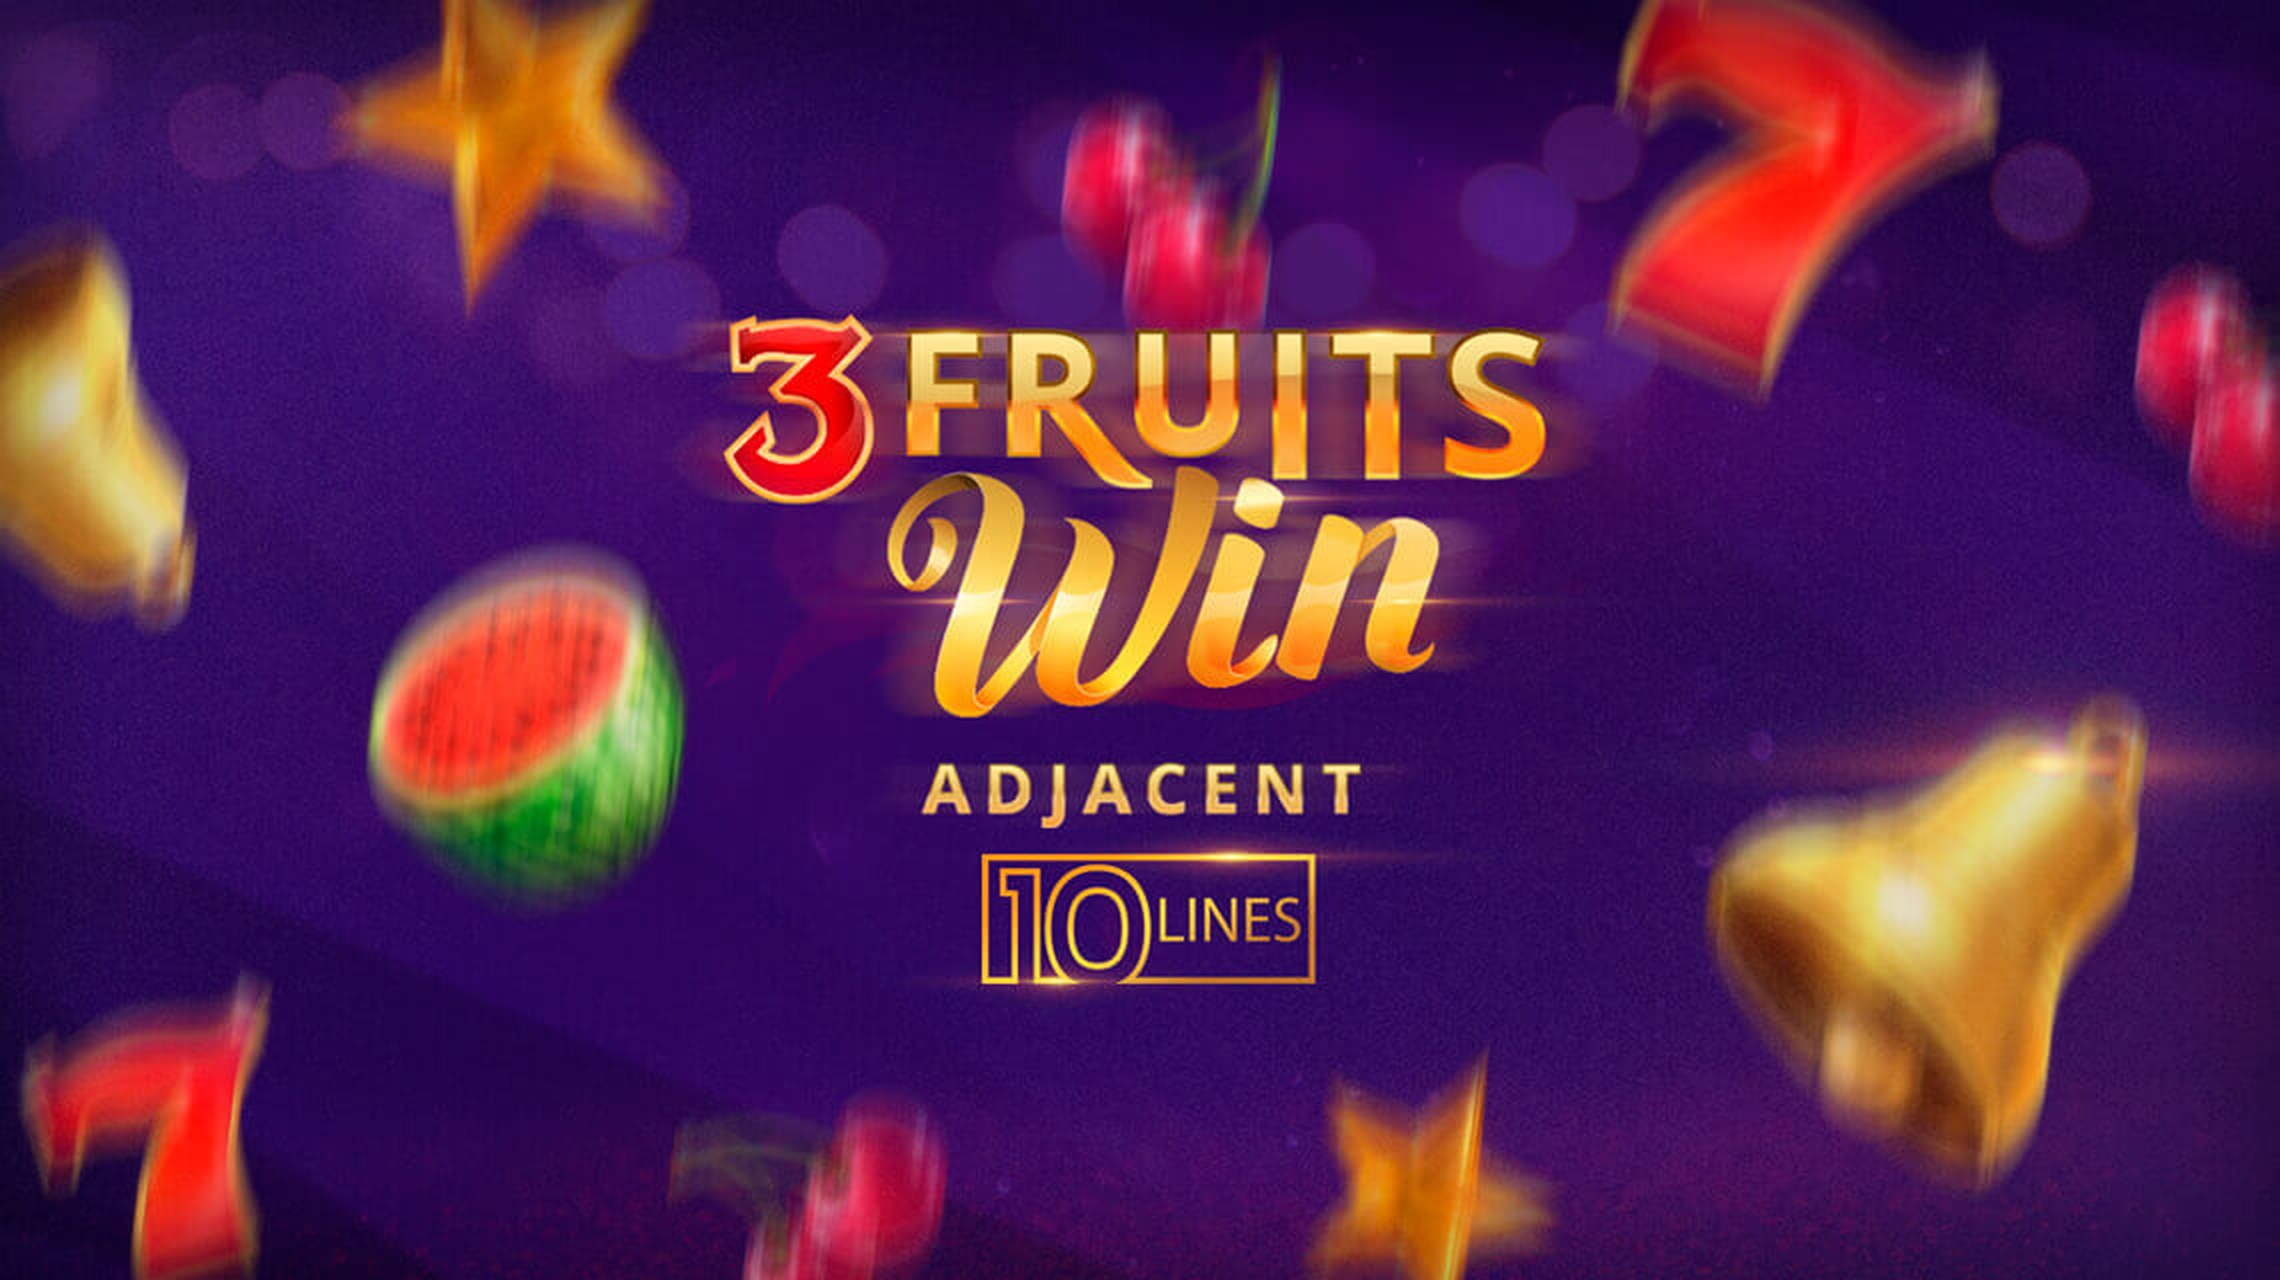 The 3 Fruits Win: 10 lines Online Slot Demo Game by Playson